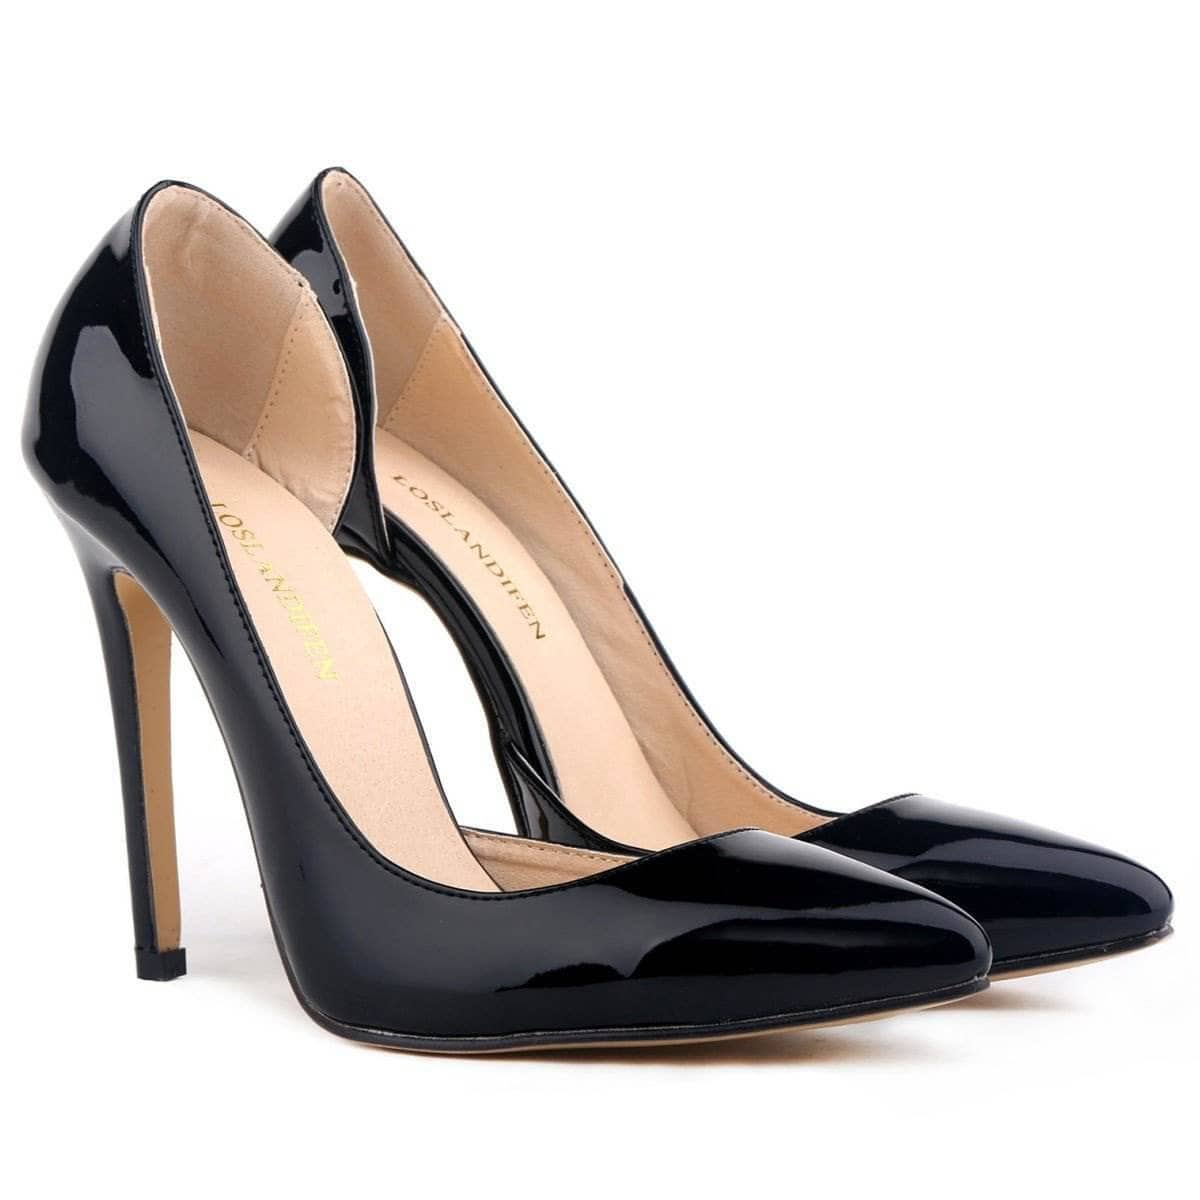 Jimmy Hoo Accessories Black Court Shoes - Multiple Colors